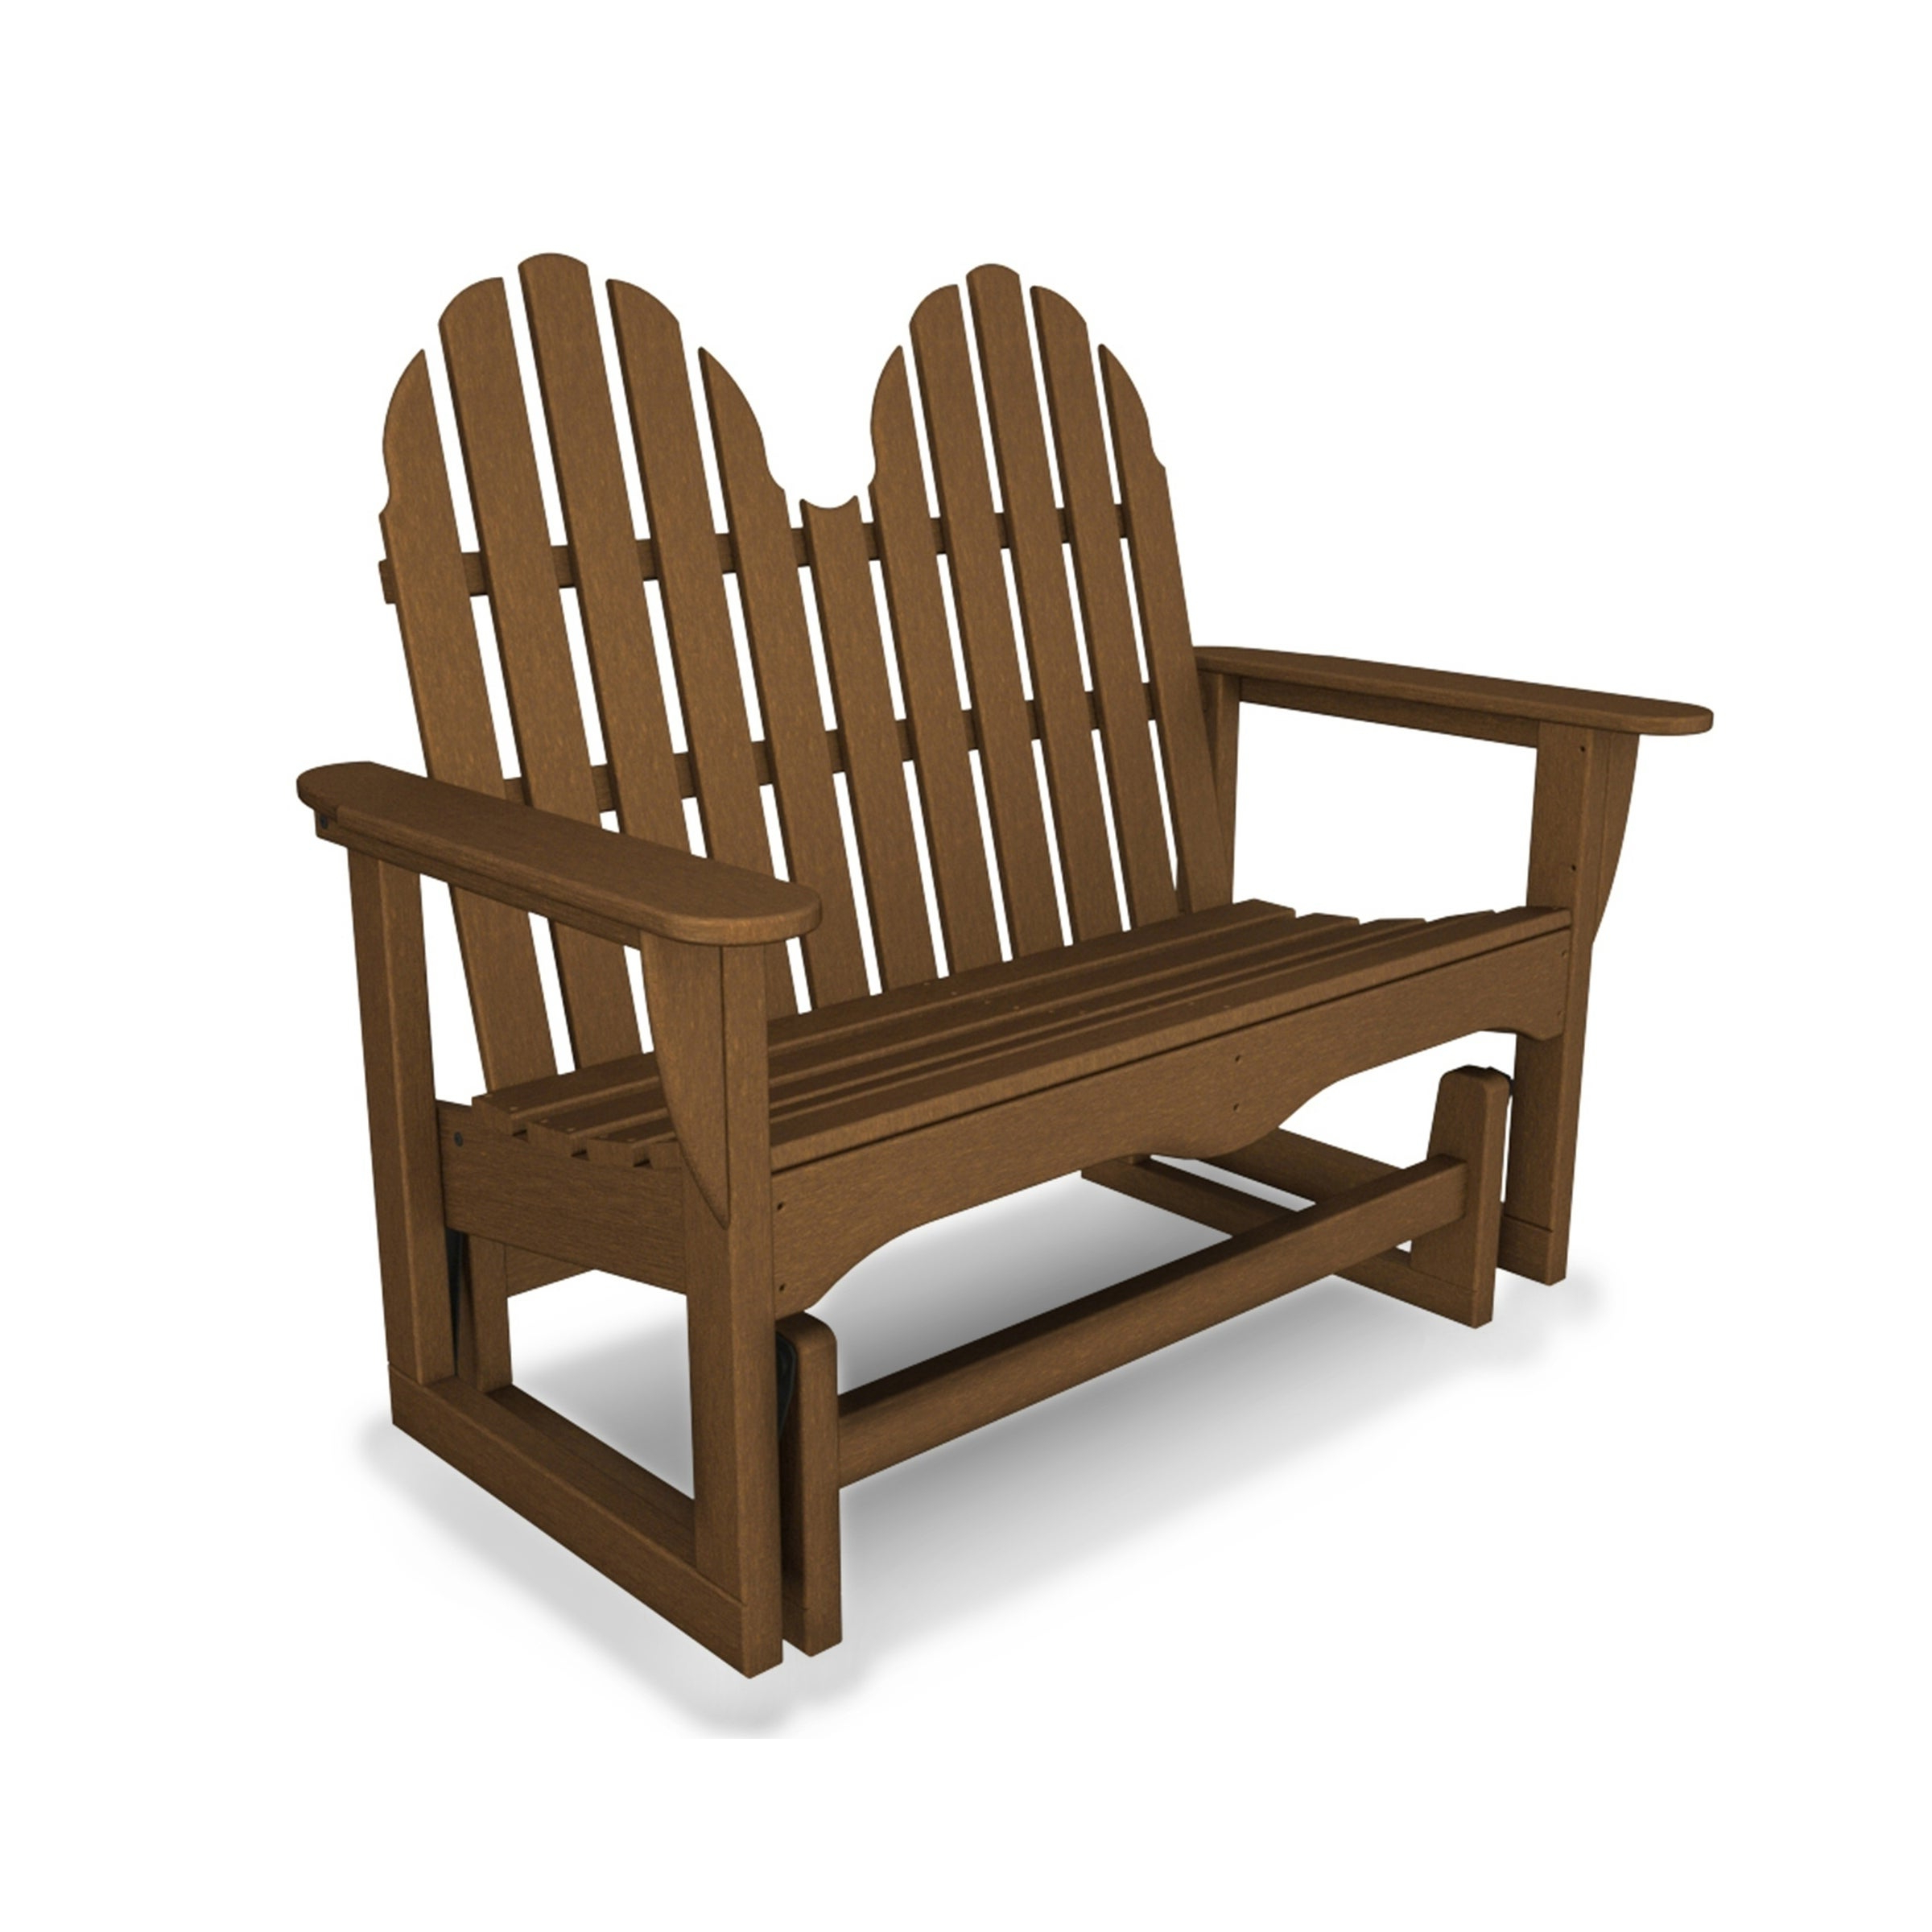 "Teak Outdoor Glider Benches With Regard To Most Up To Date Polywood® Classic Adirondack 48"" Outdoor Glider Bench (View 17 of 25)"